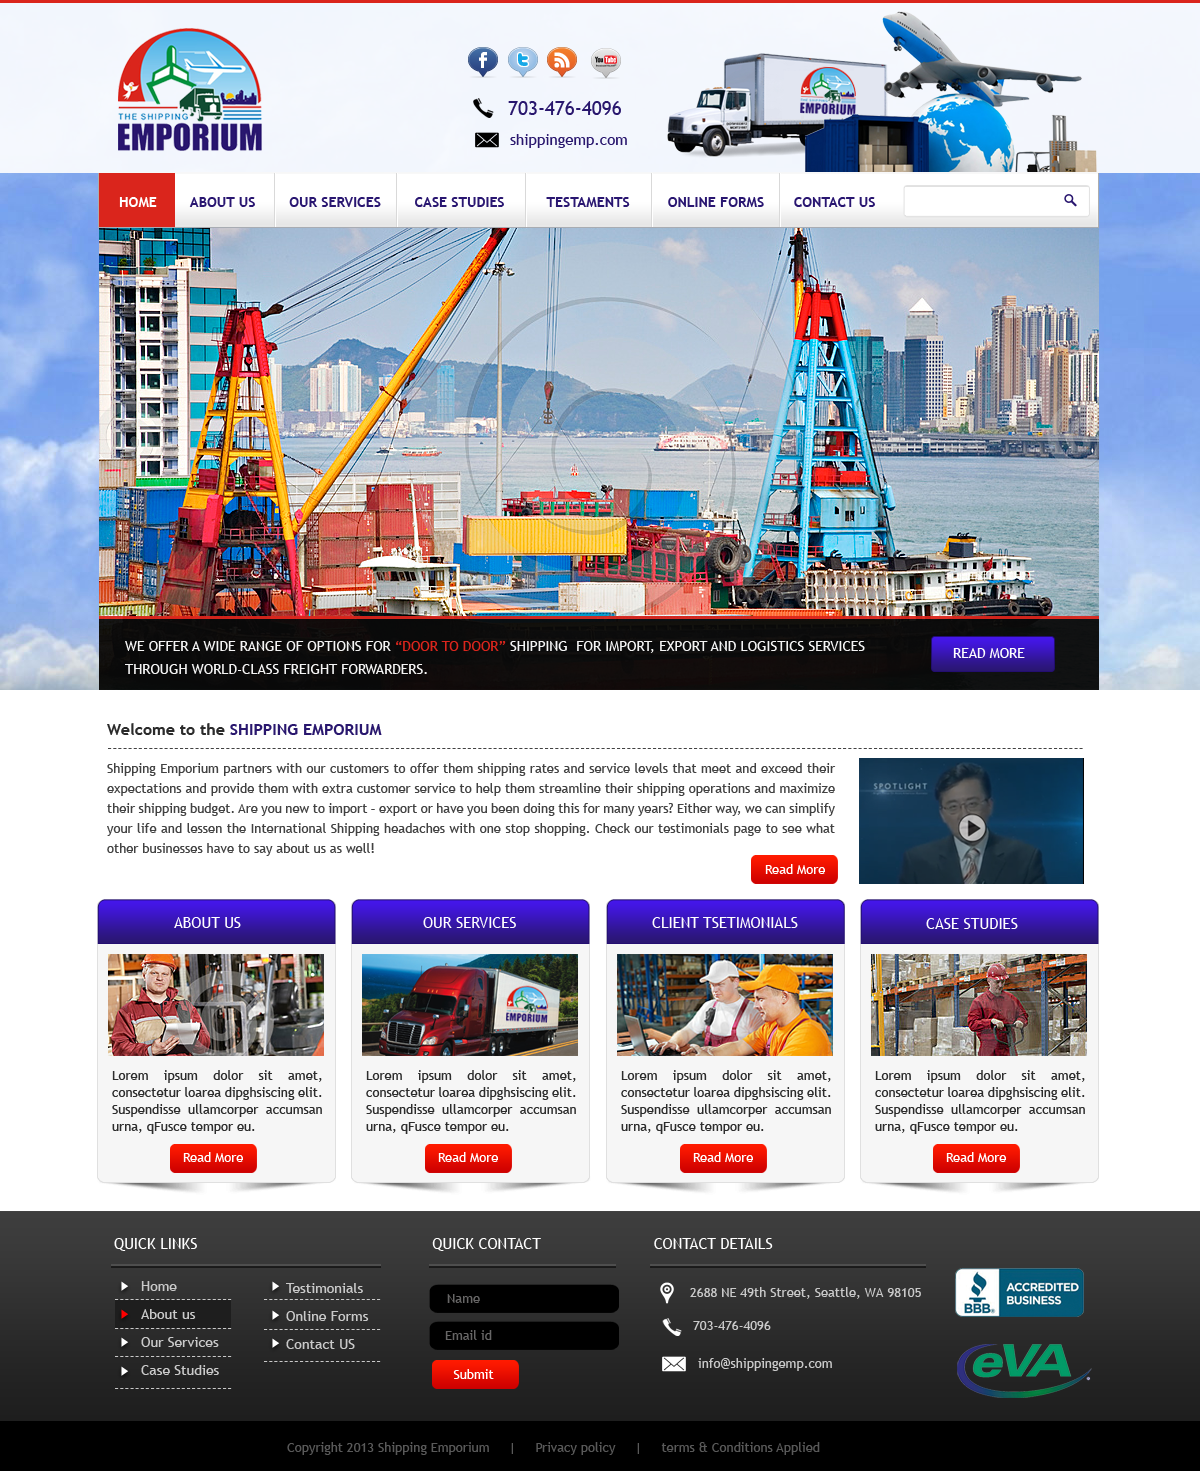 Web Page Design by Vishwa Km - Entry No. 16 in the Web Page Design Contest Artistic Web Page Design for The Shipping Emporium Website.